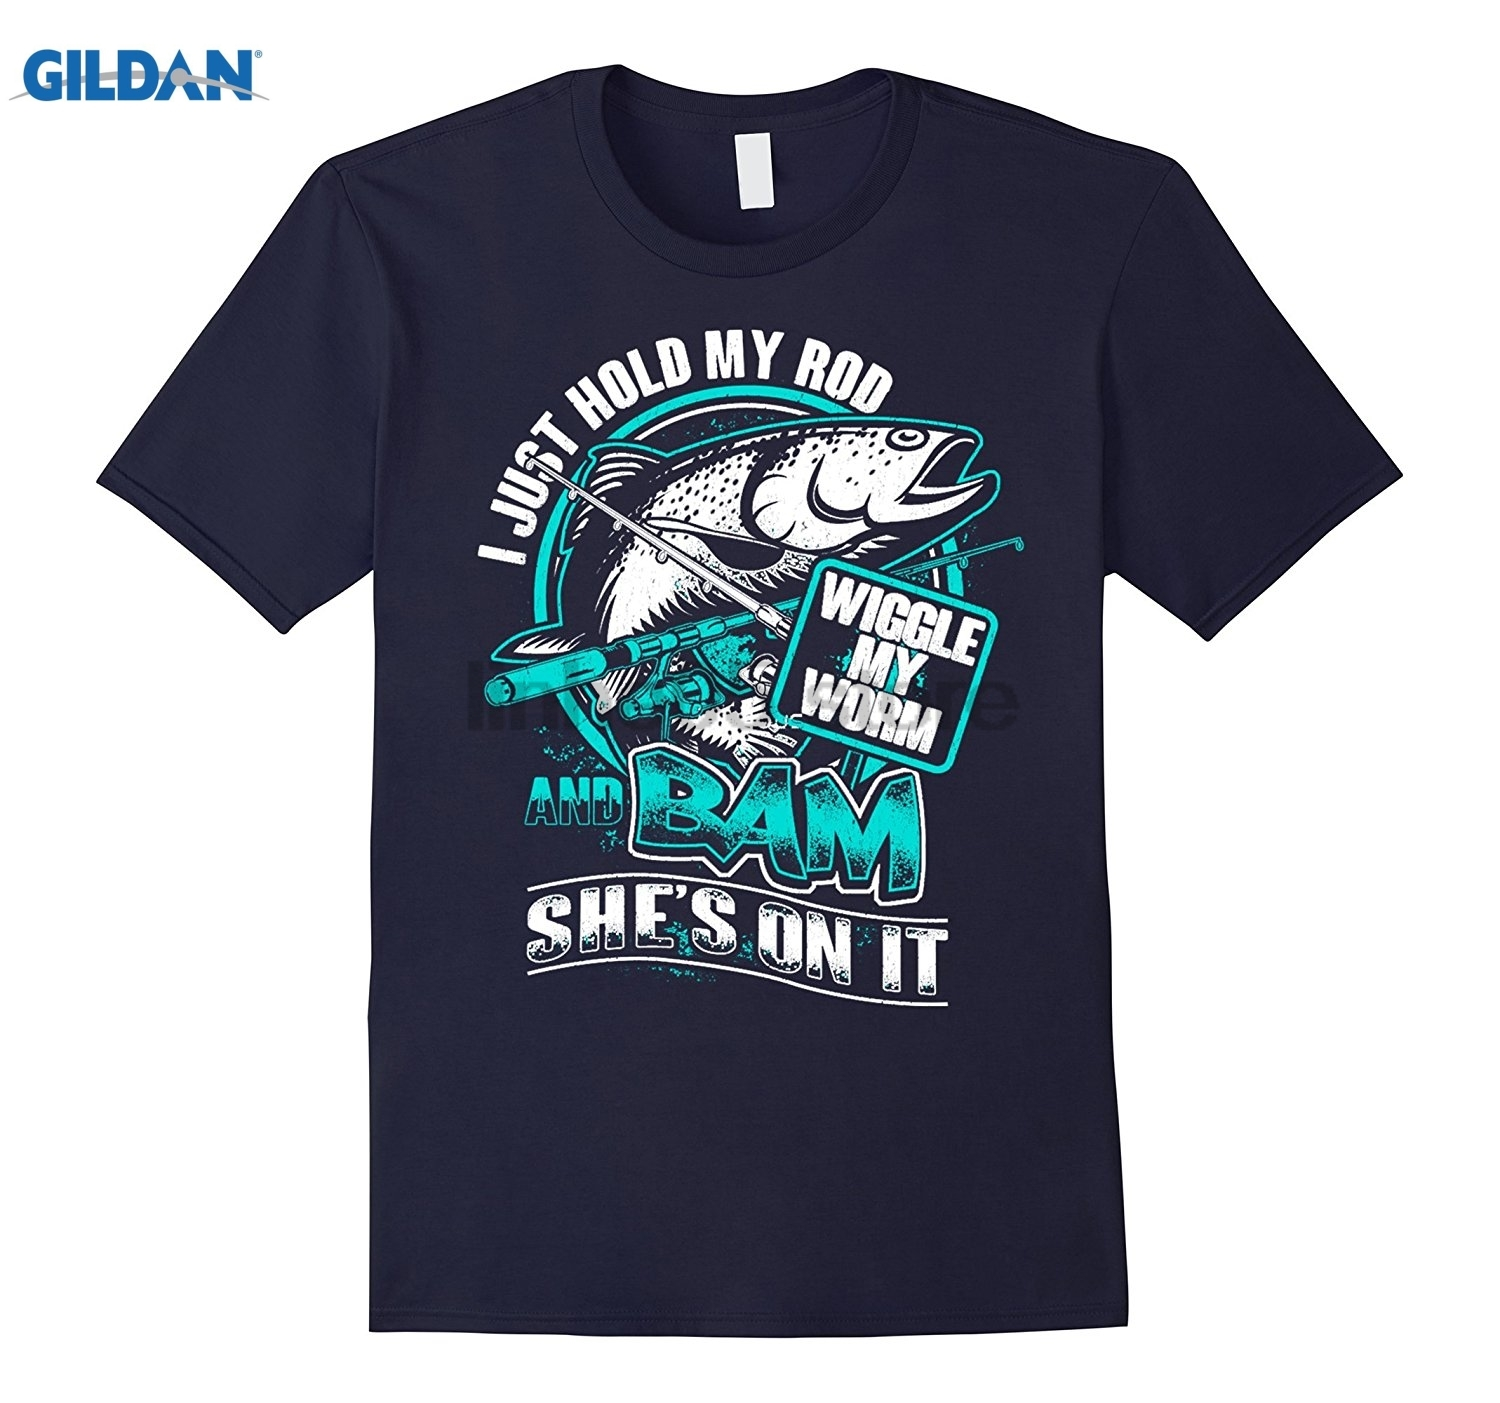 GILDAN I Just Hold My Rod Wiggle My Worm And Bam Shes On It Womens T-shirt